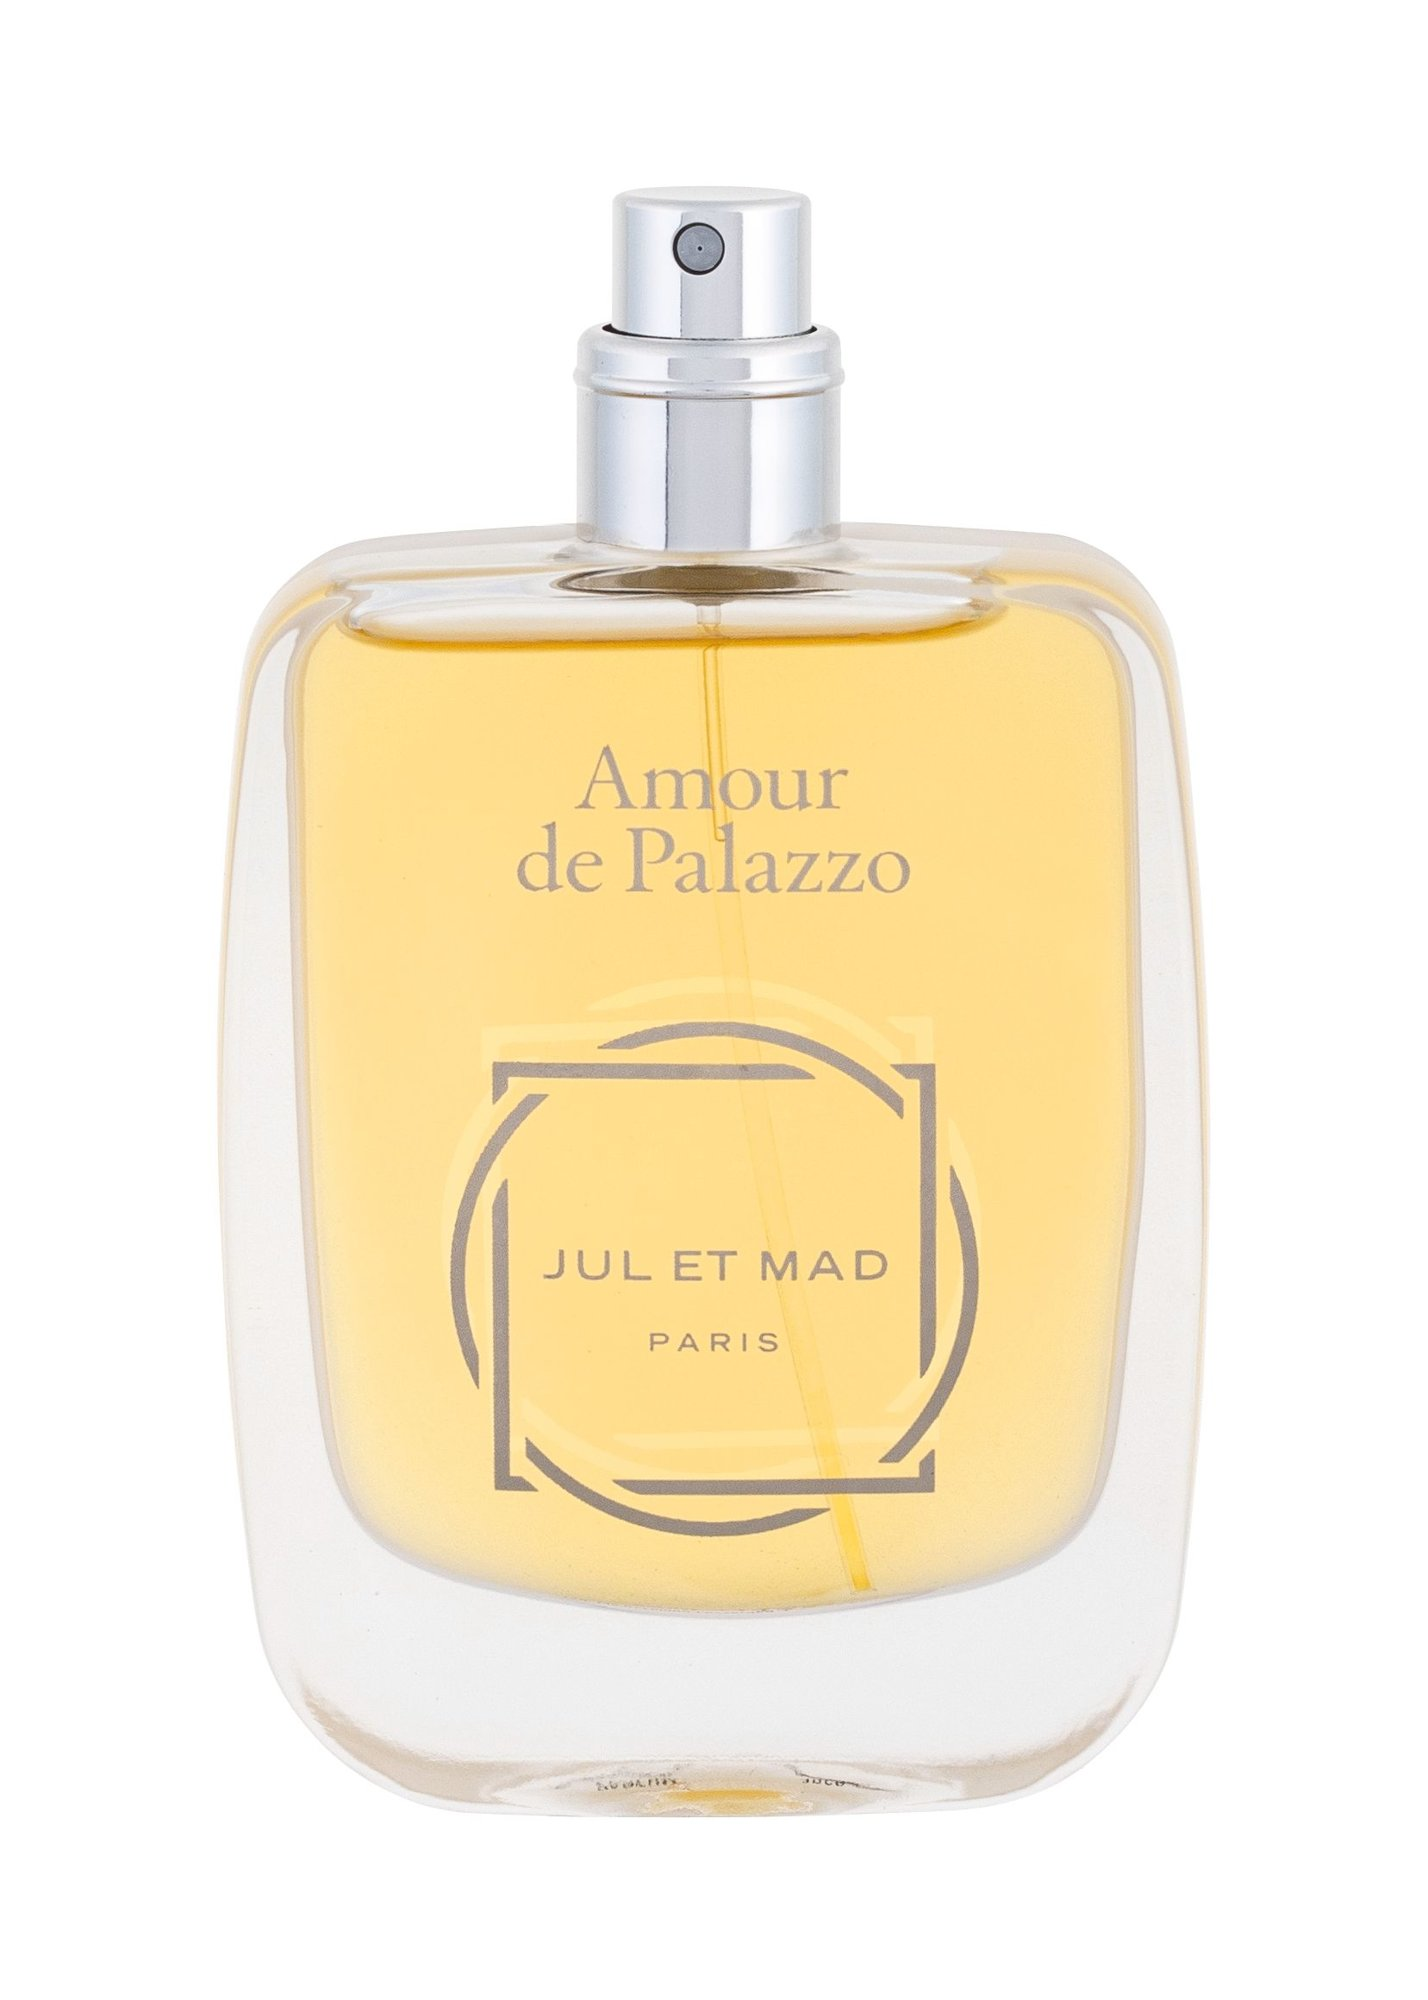 Jul et Mad Paris Amour de Palazzo Perfume 50ml